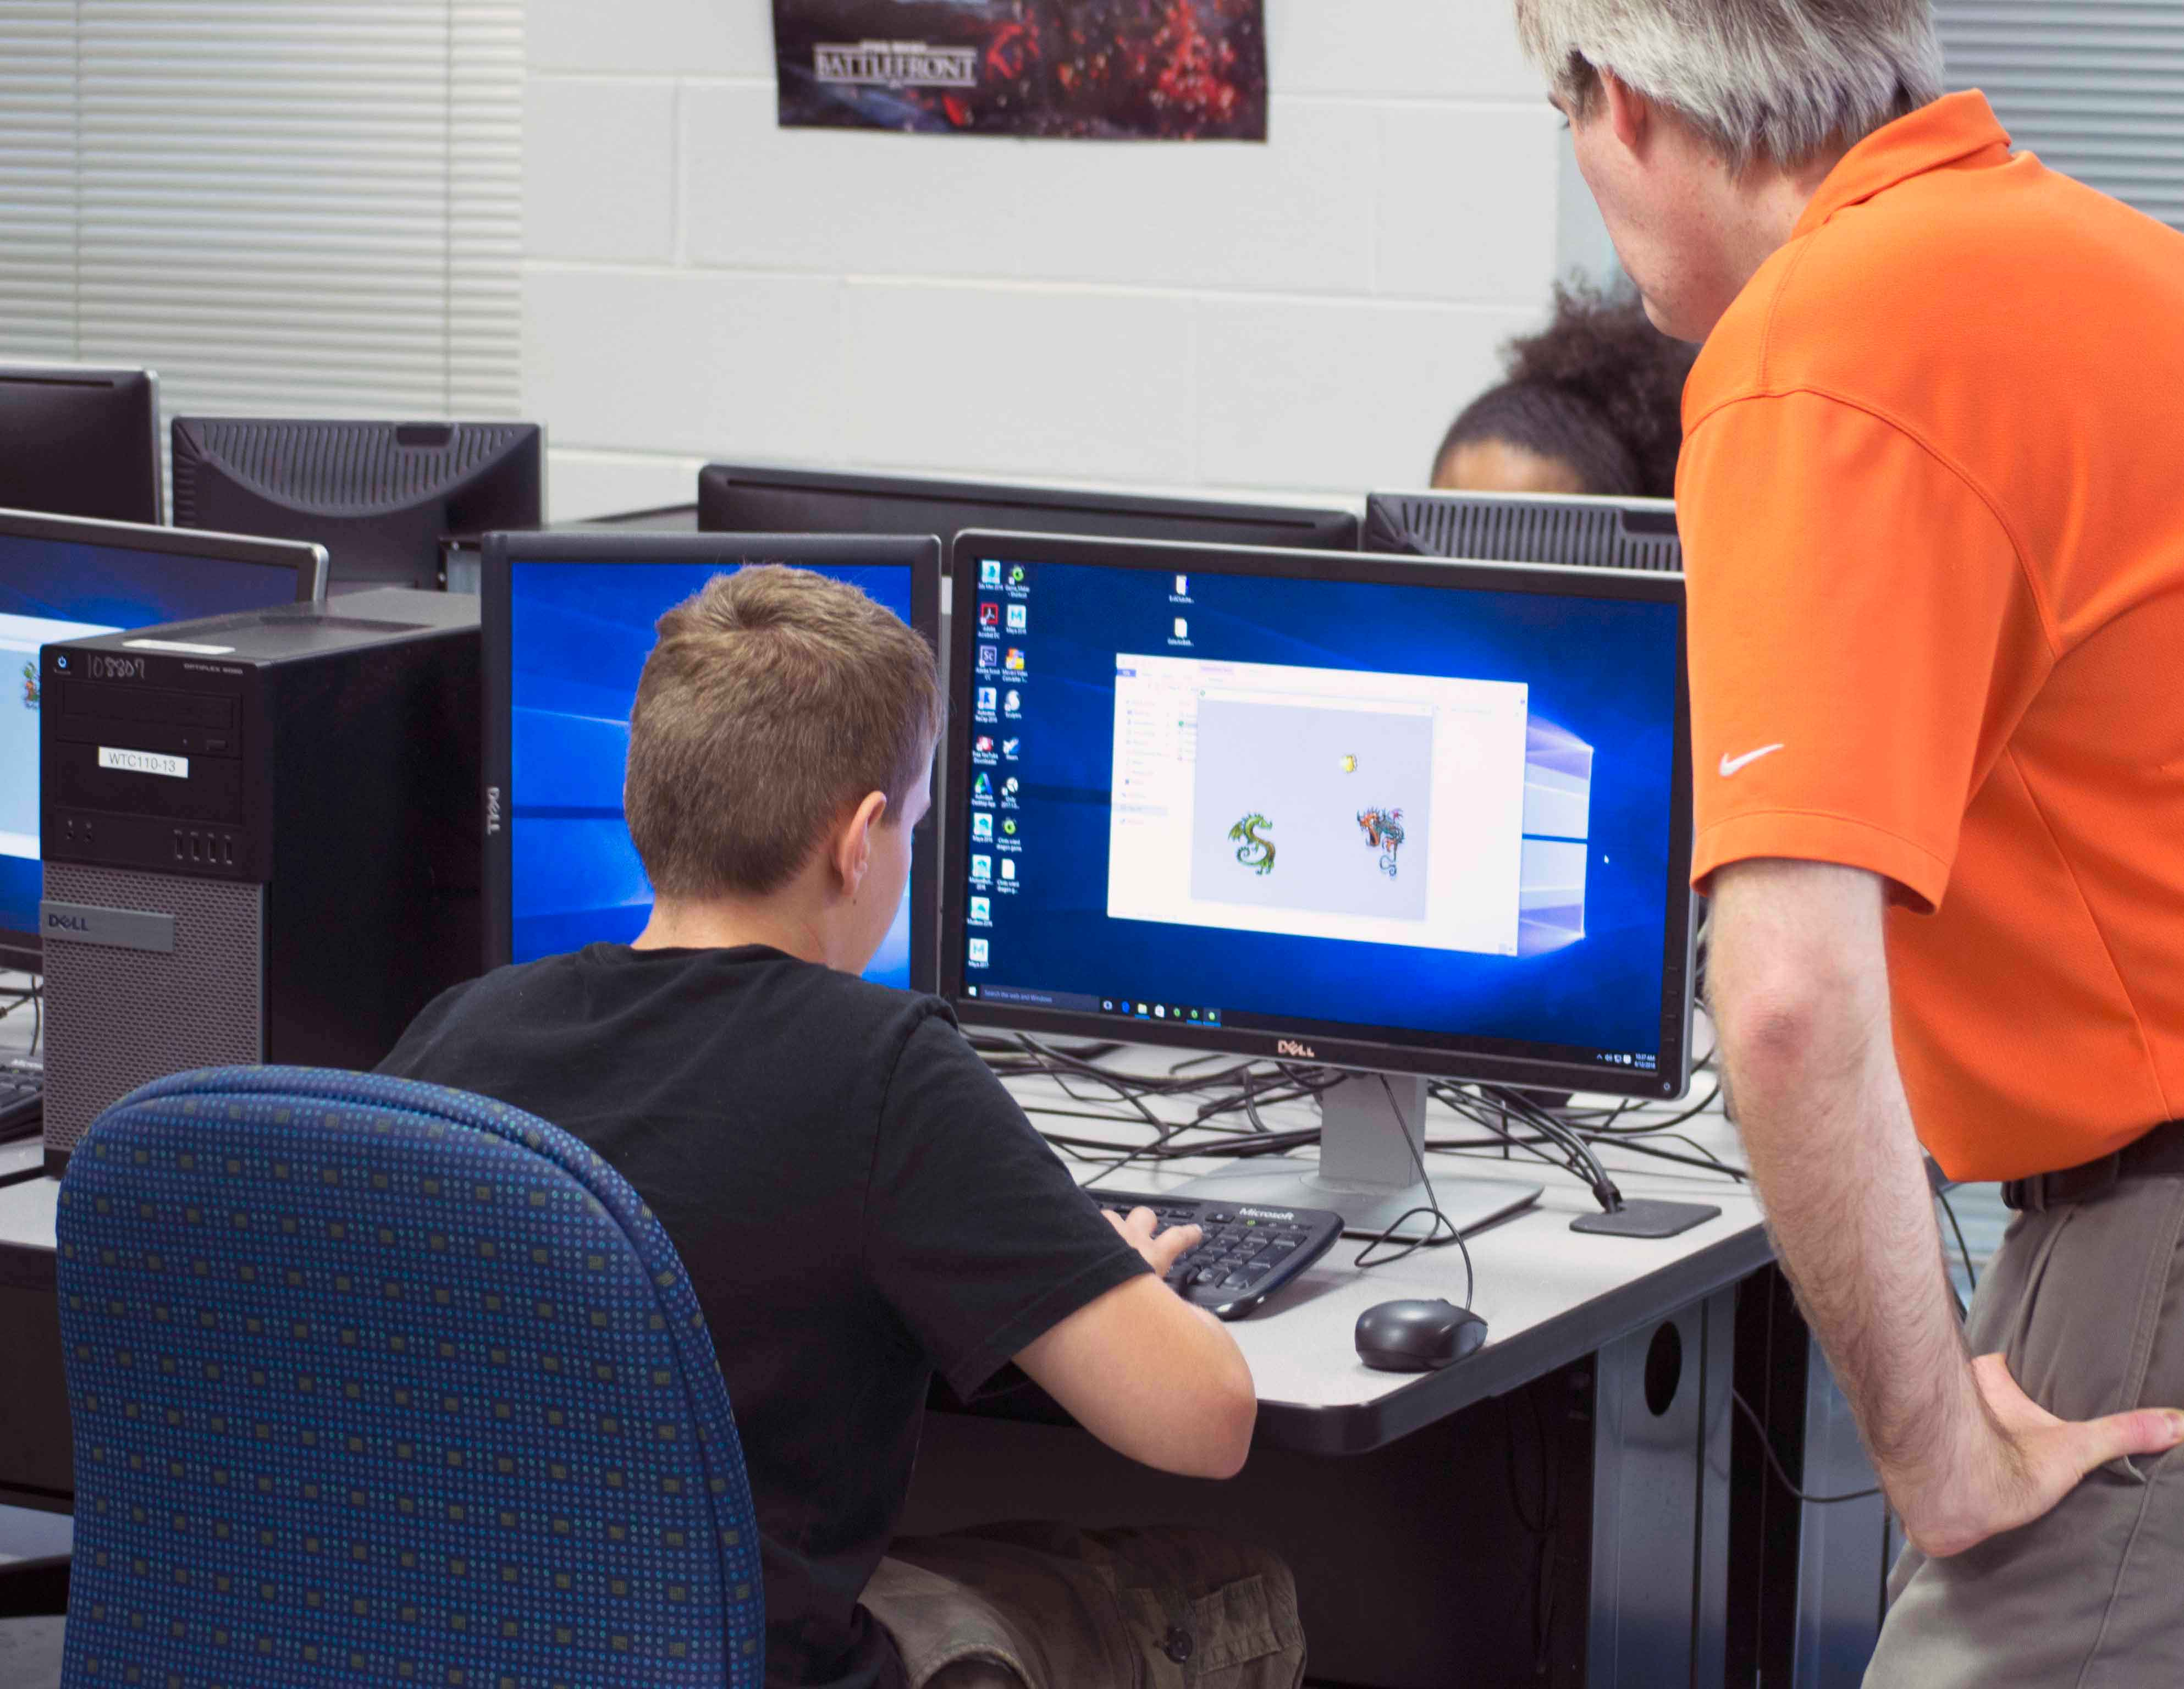 Simulation and Game Campers